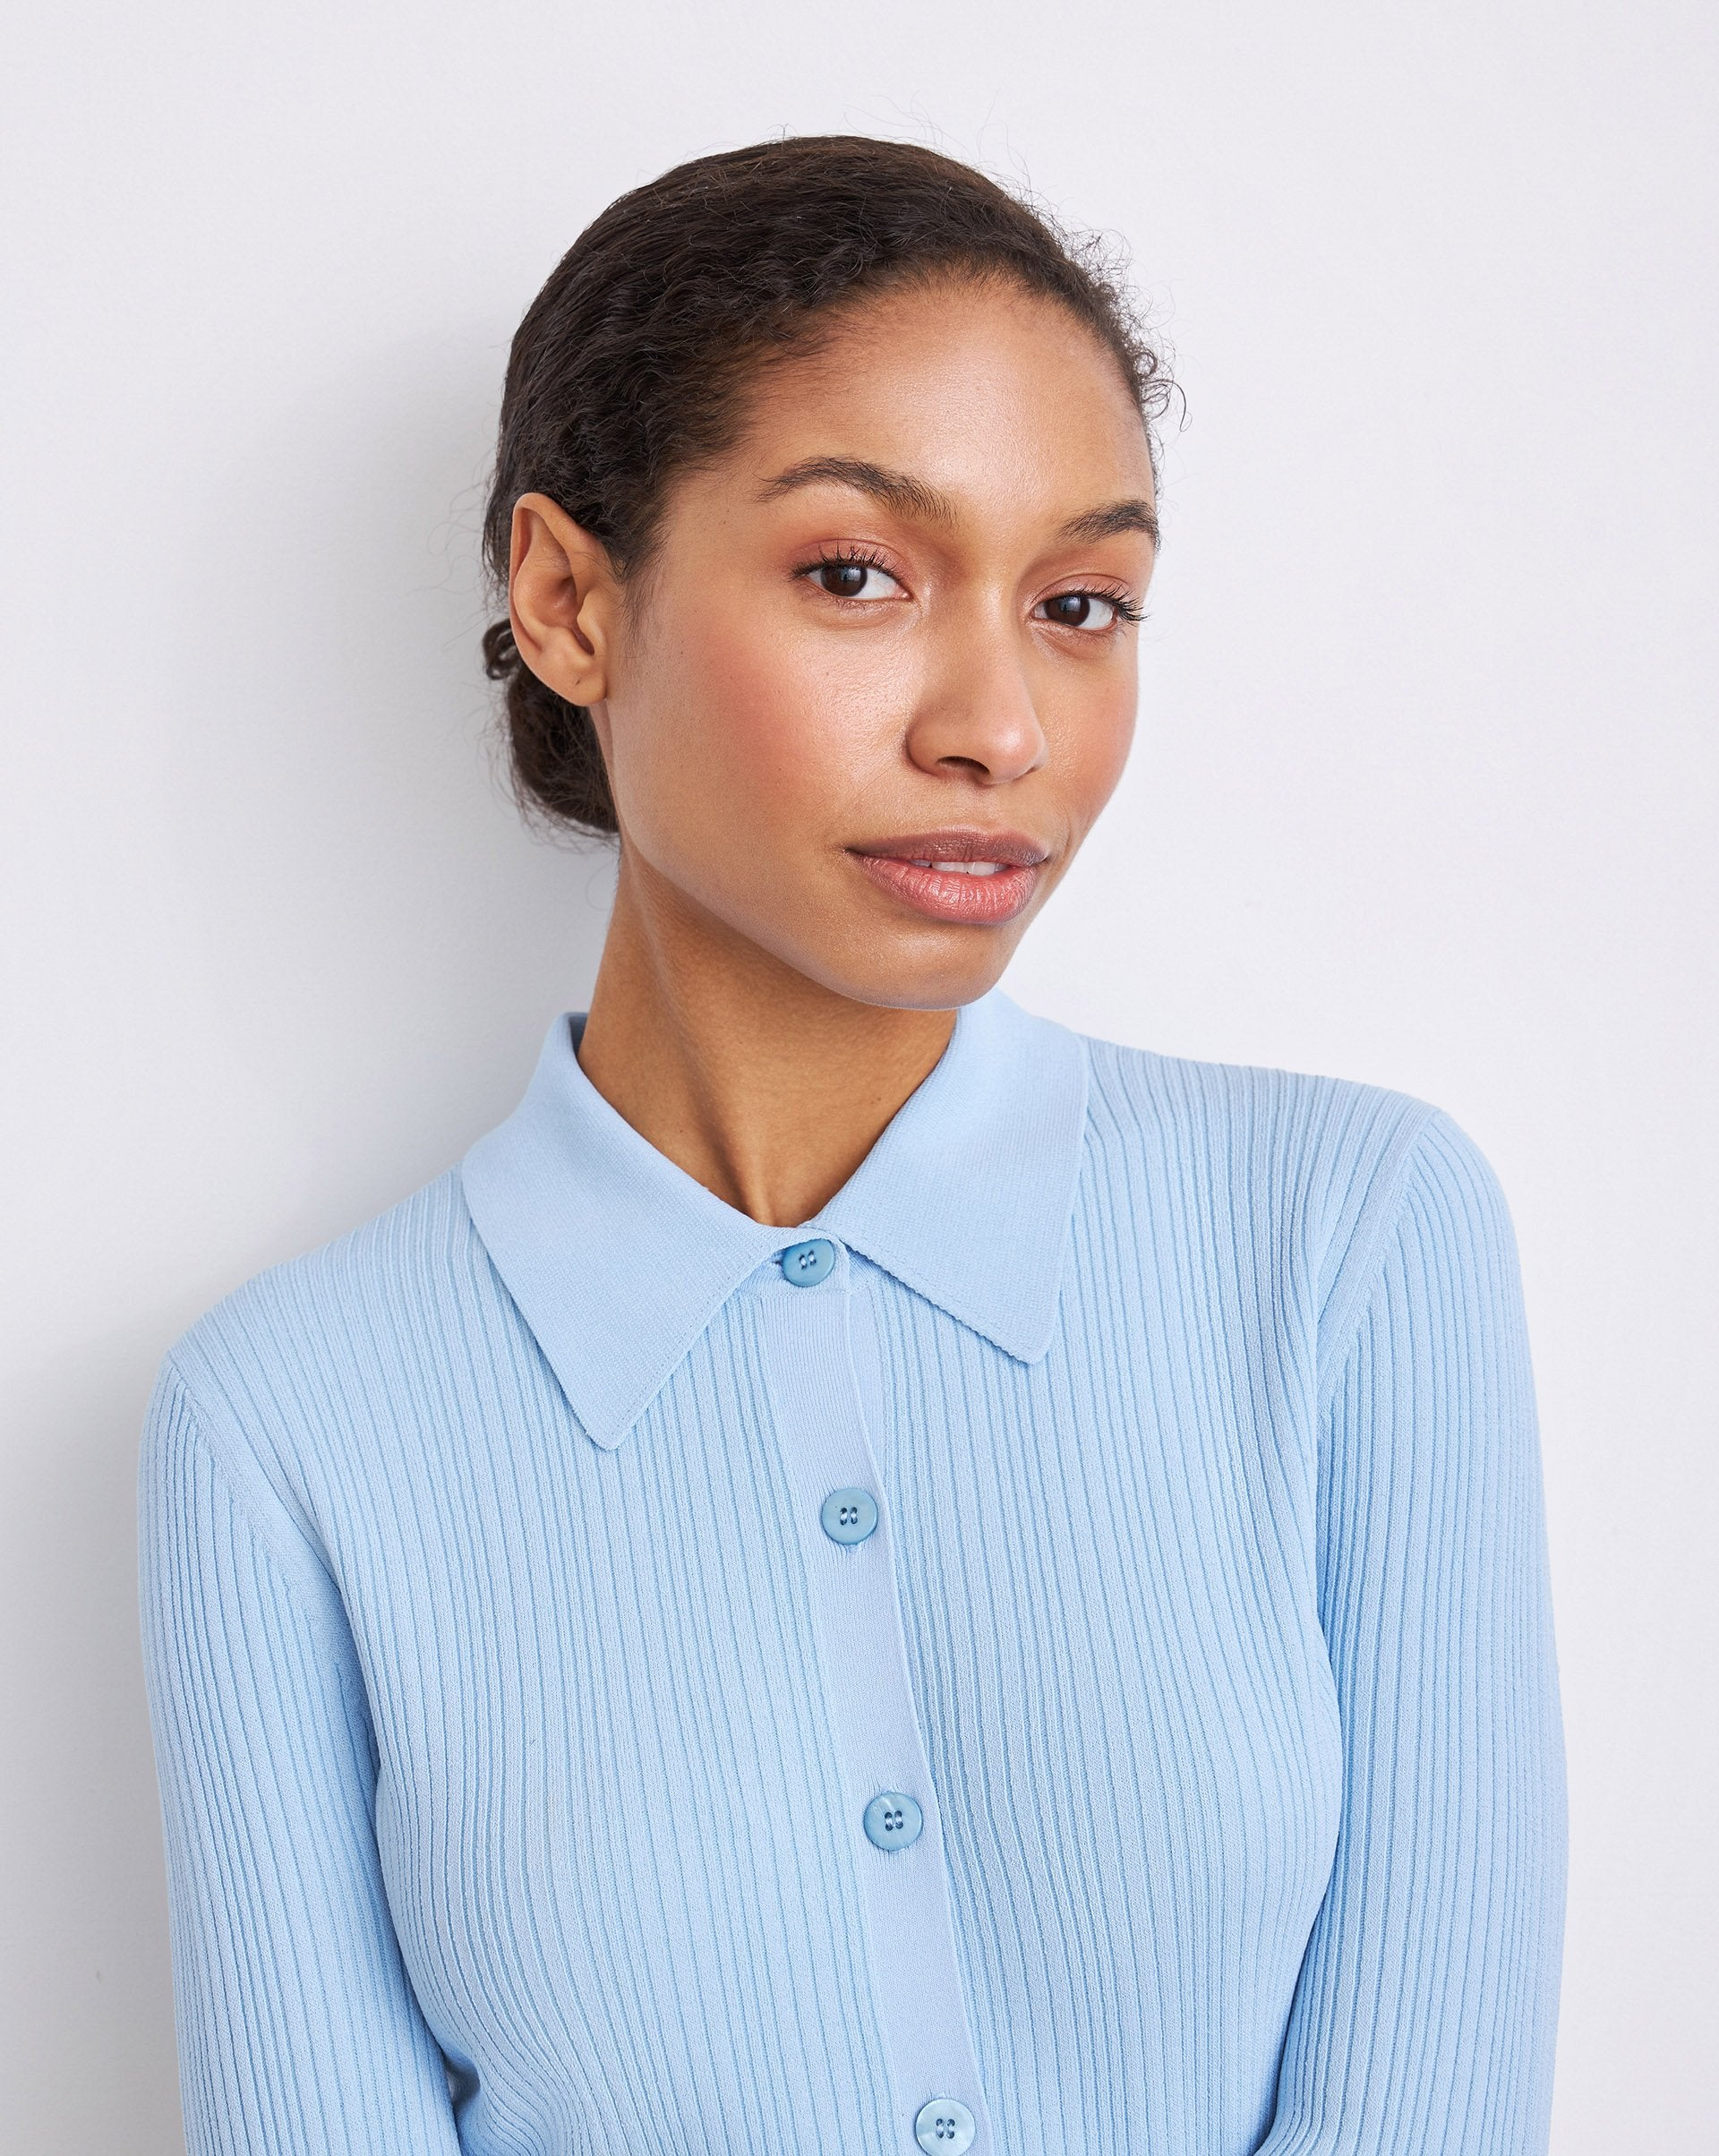 Ribbed knit button up shirt - 12 STOREEZ